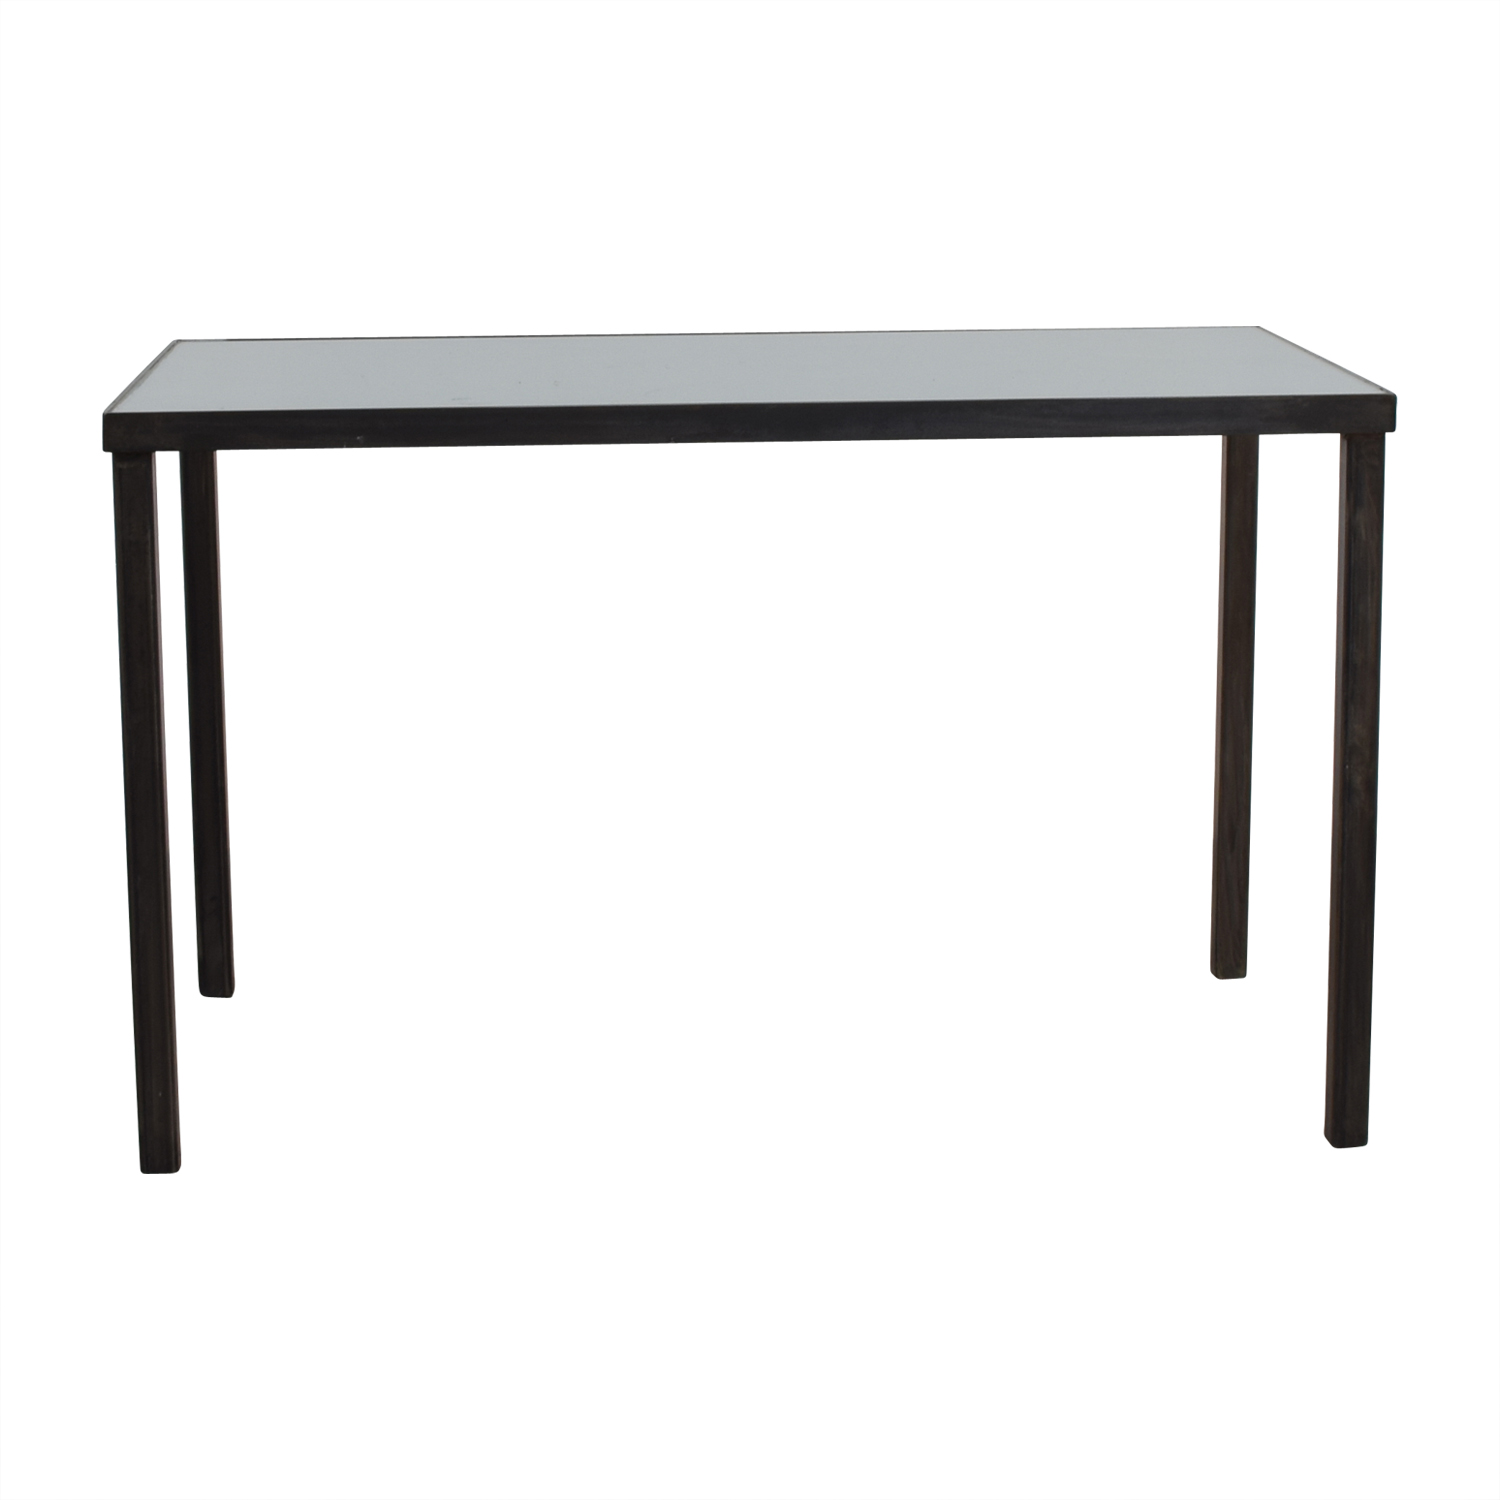 West Elm West Elm Glass Top and Steel Base Office Desk nj